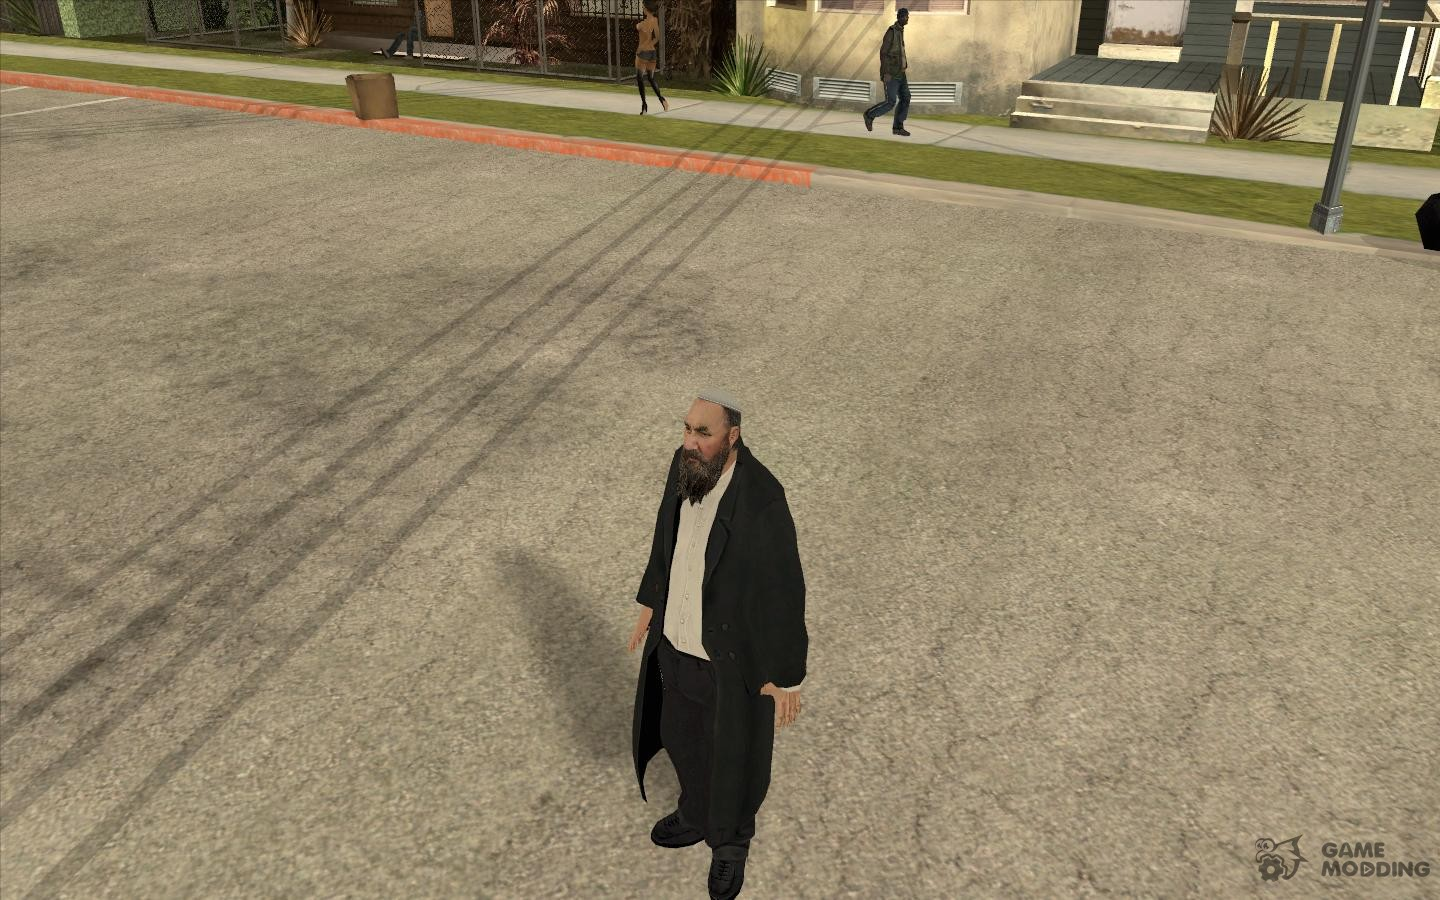 san andreas muslim single men A new analysis from the pew research center examined which cities have the most single employed men  with 101 single employed men for every 100 single women san.